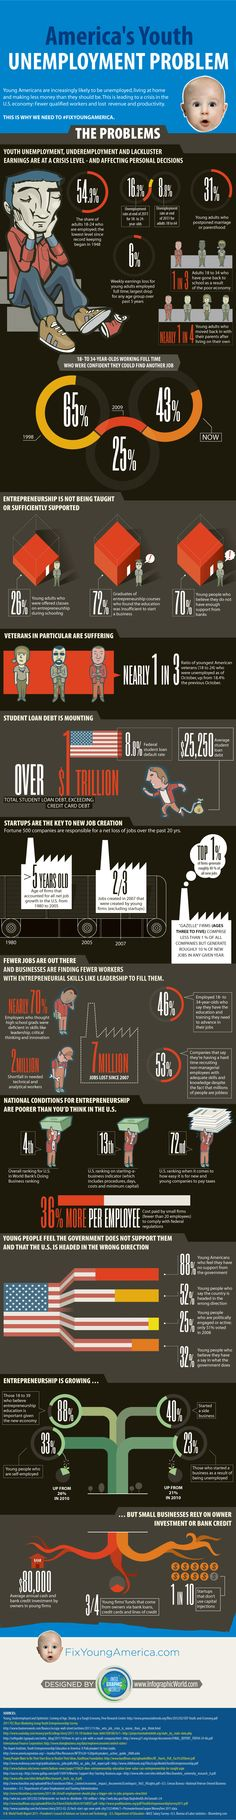 Youth Unemployment Is At A Crisis Level #infographic